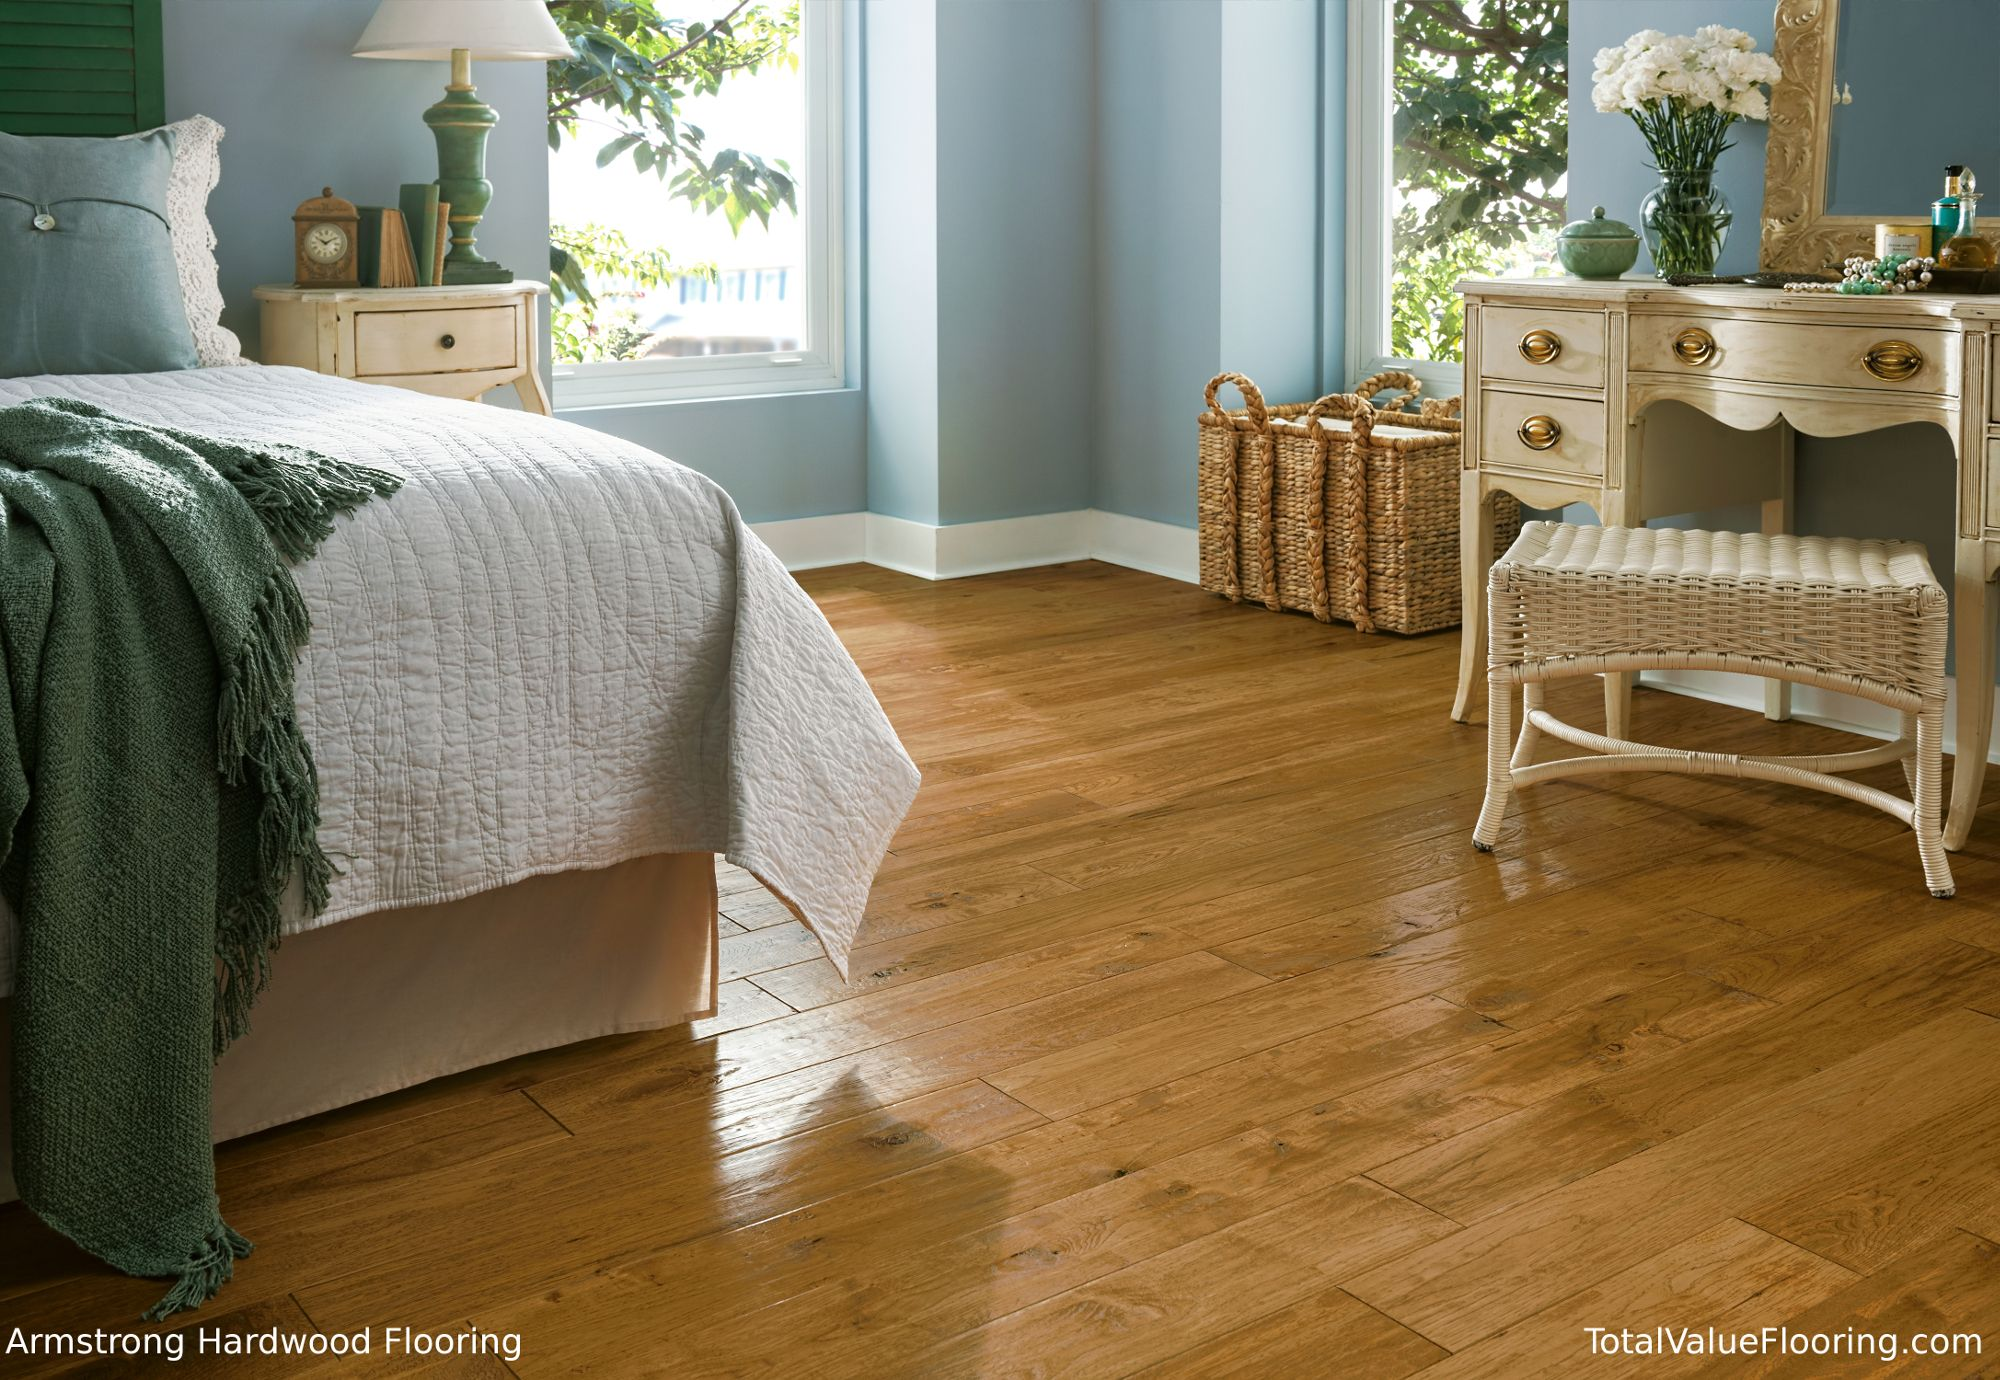 newfangled installing laminate wood selections style max swiftlock hardwood lowes floating floor flooring pergo canada armstrong floors installation graceful